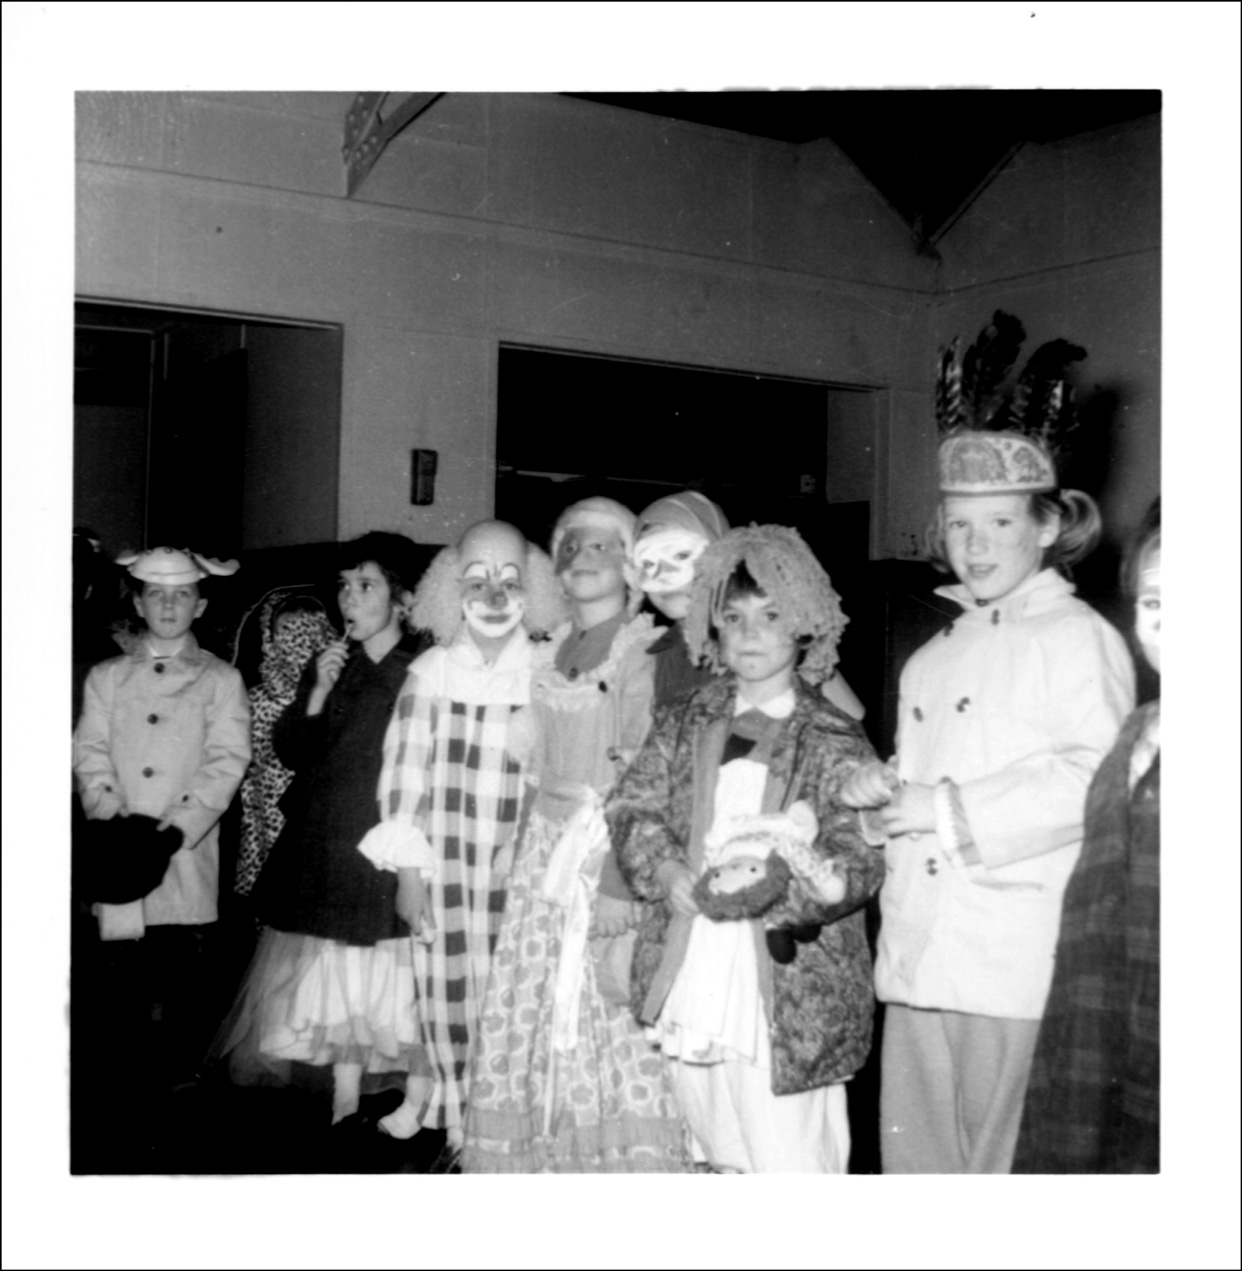 Halloween 1962 at the Vincentian Institute, Albany, New York ...